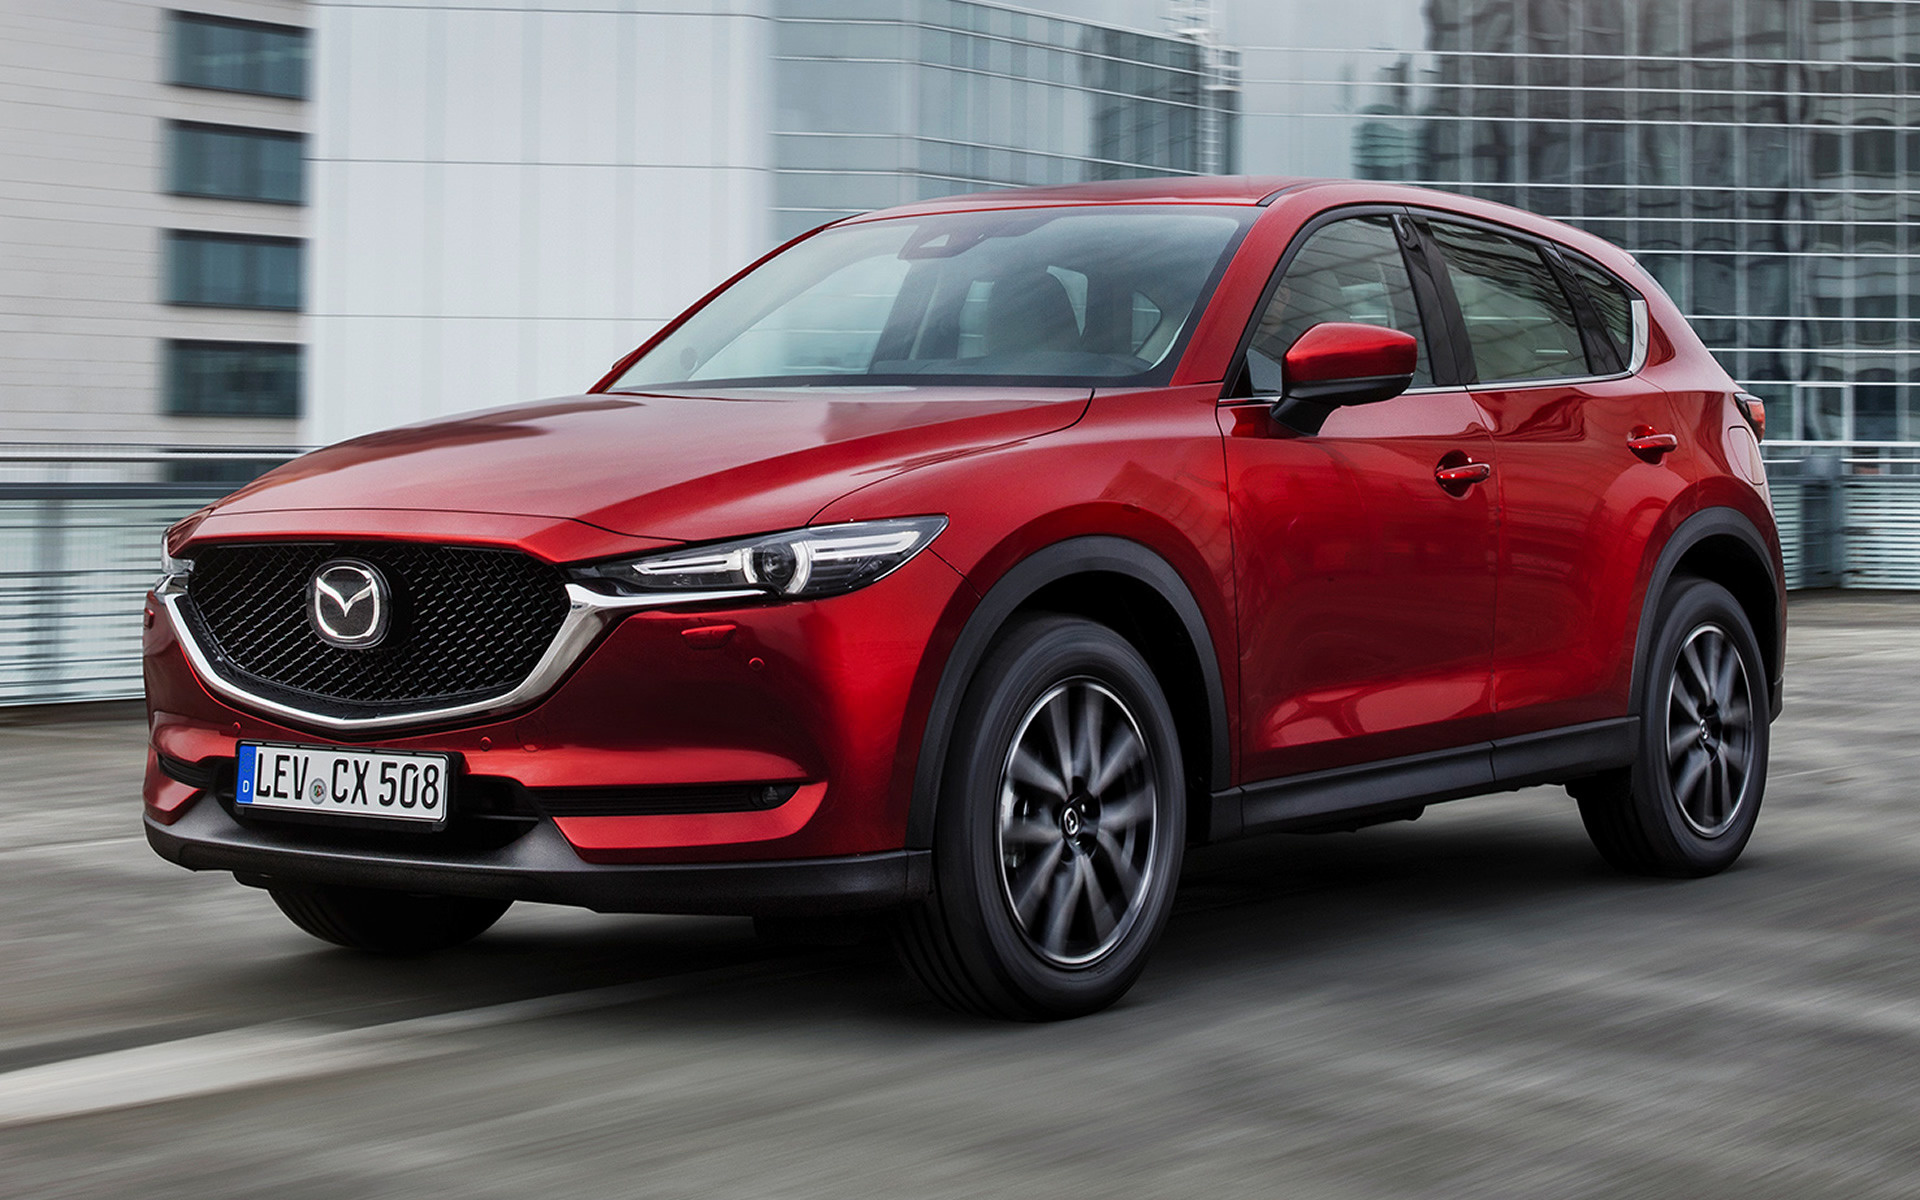 Mazda cx 5 2017 wallpapers and hd images car pixel wide 85 voltagebd Choice Image